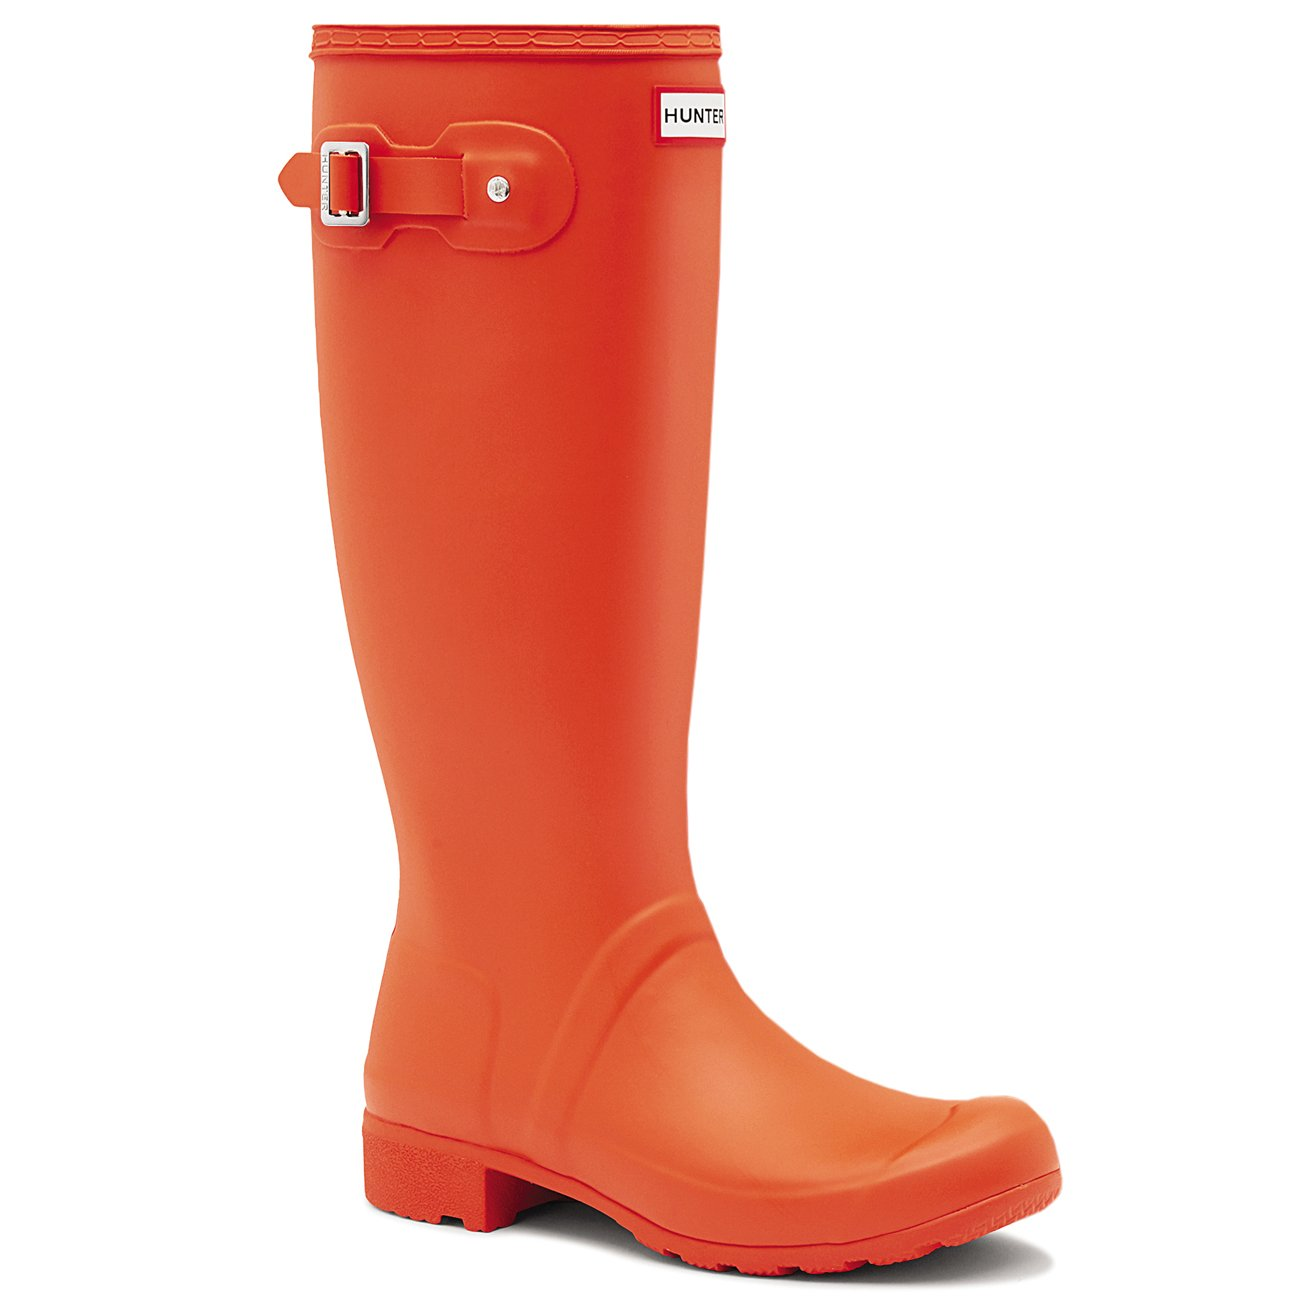 Womens Hunter Original Tour Rain Winter Snow Festival Wellington Boots B01DKRI0L0 8 B(M) US|Tent Red